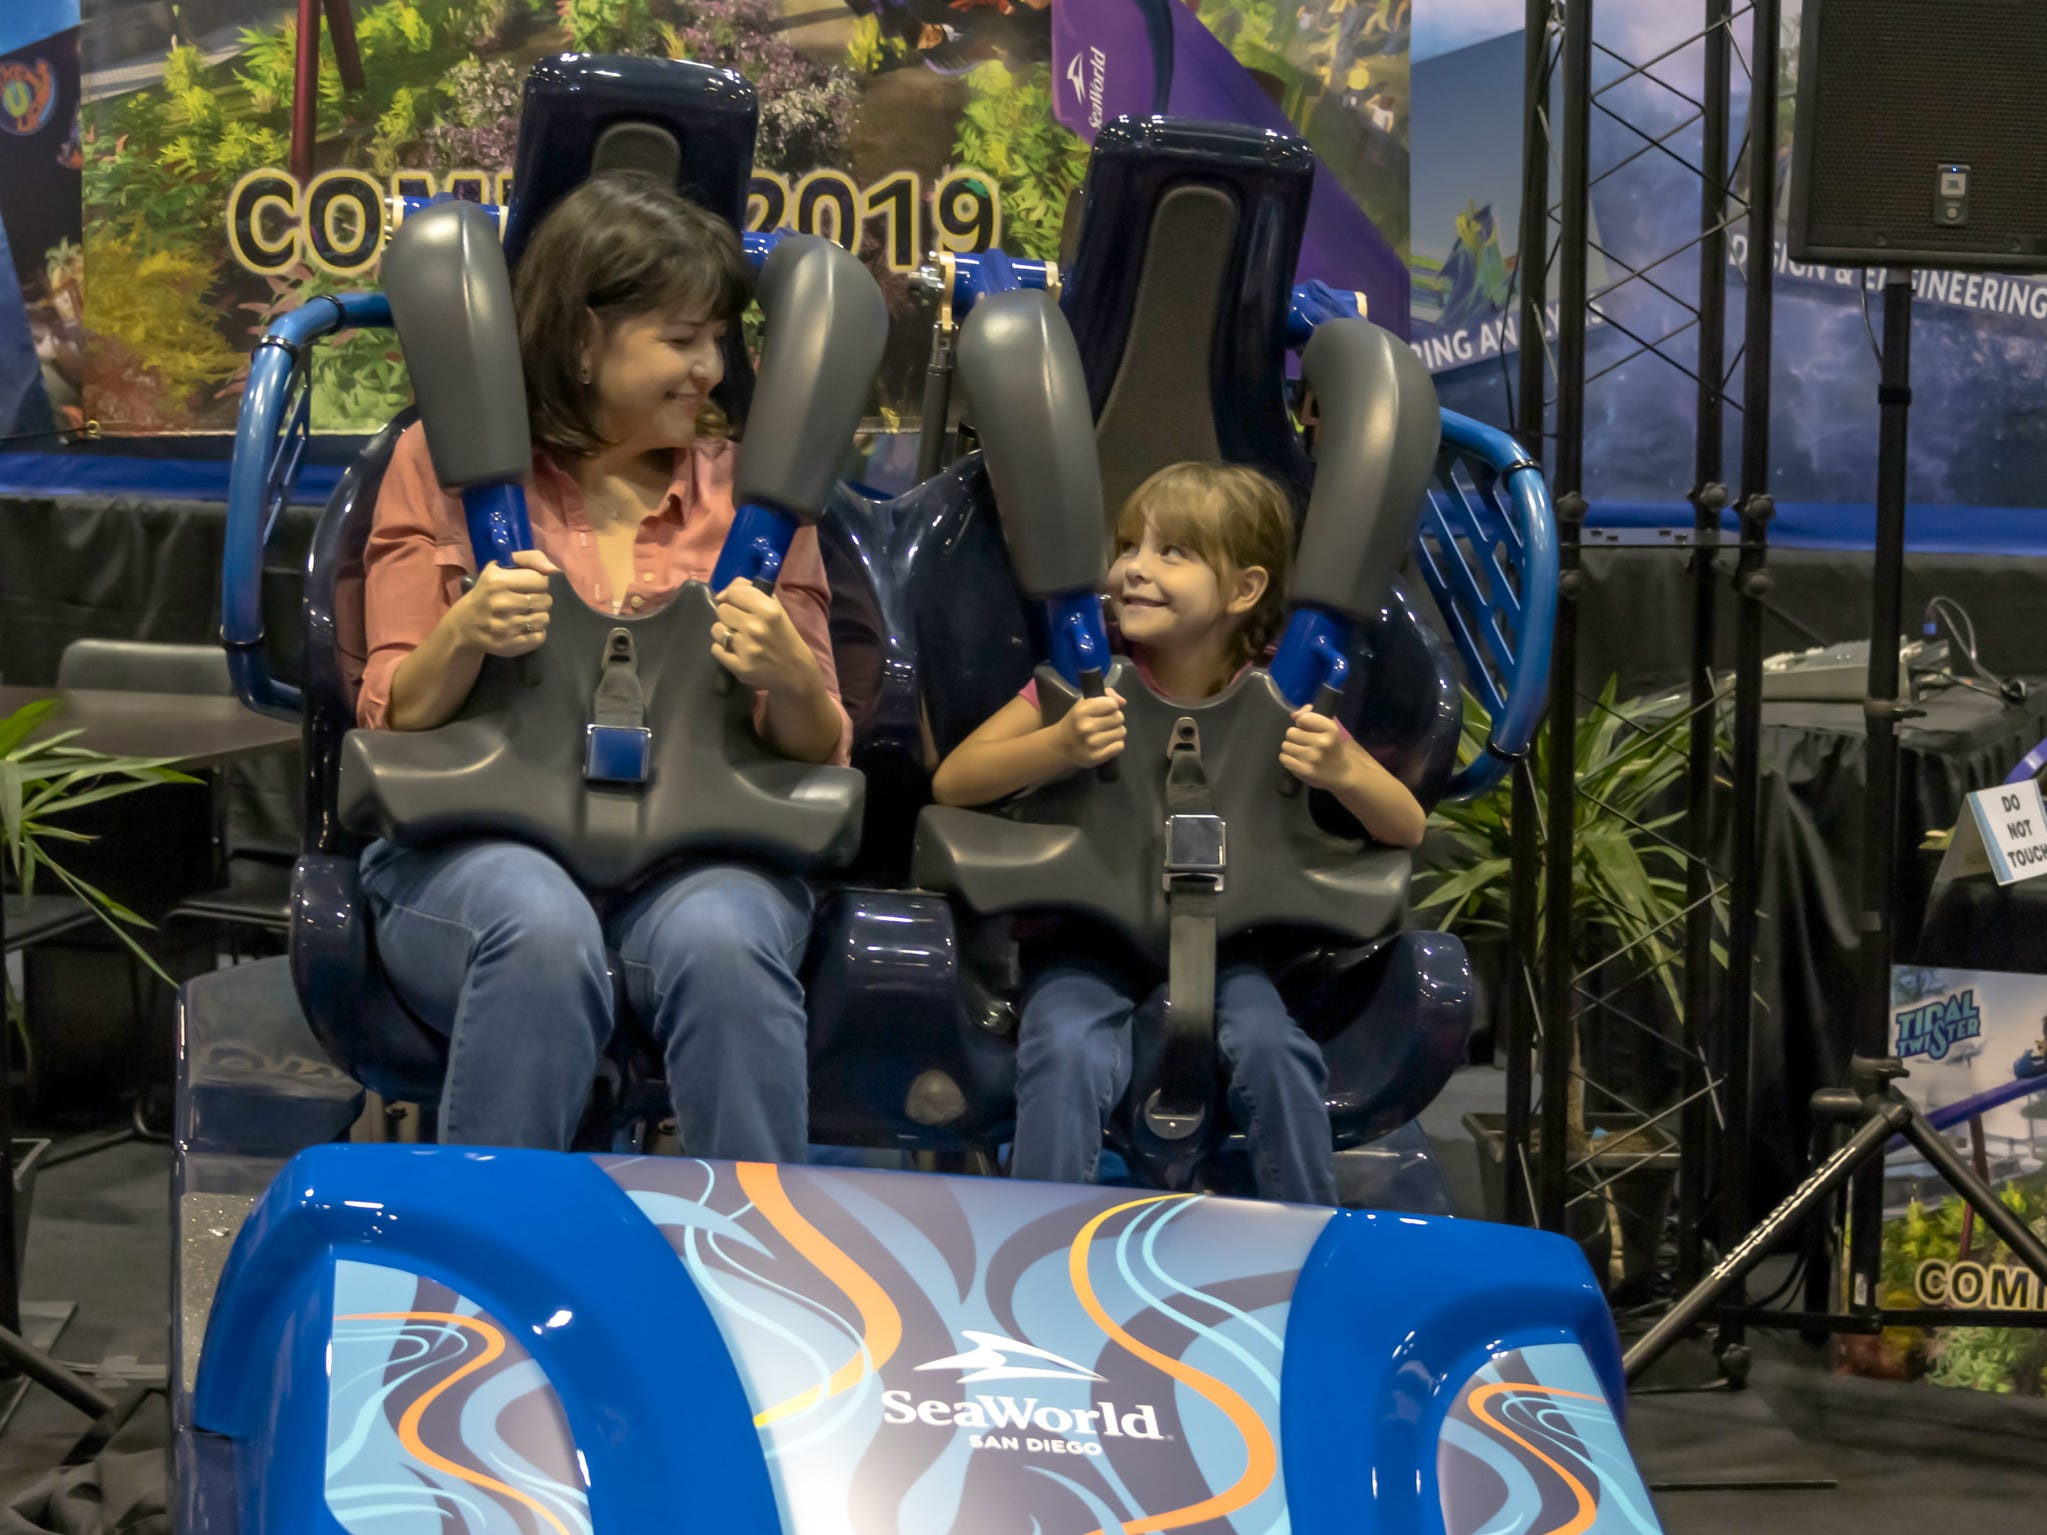 Some of the thrill machines that will be opening in 2019 were showcased at the expo, including Tidal Twister, coming to SeaWorld San Diego in California. Manufactured by Skyline Attractions, the ride will feature two sets of cars that will race forward and backwards a number of times and cross over one another in the middle of a compact, horizontal, figure-8 track.